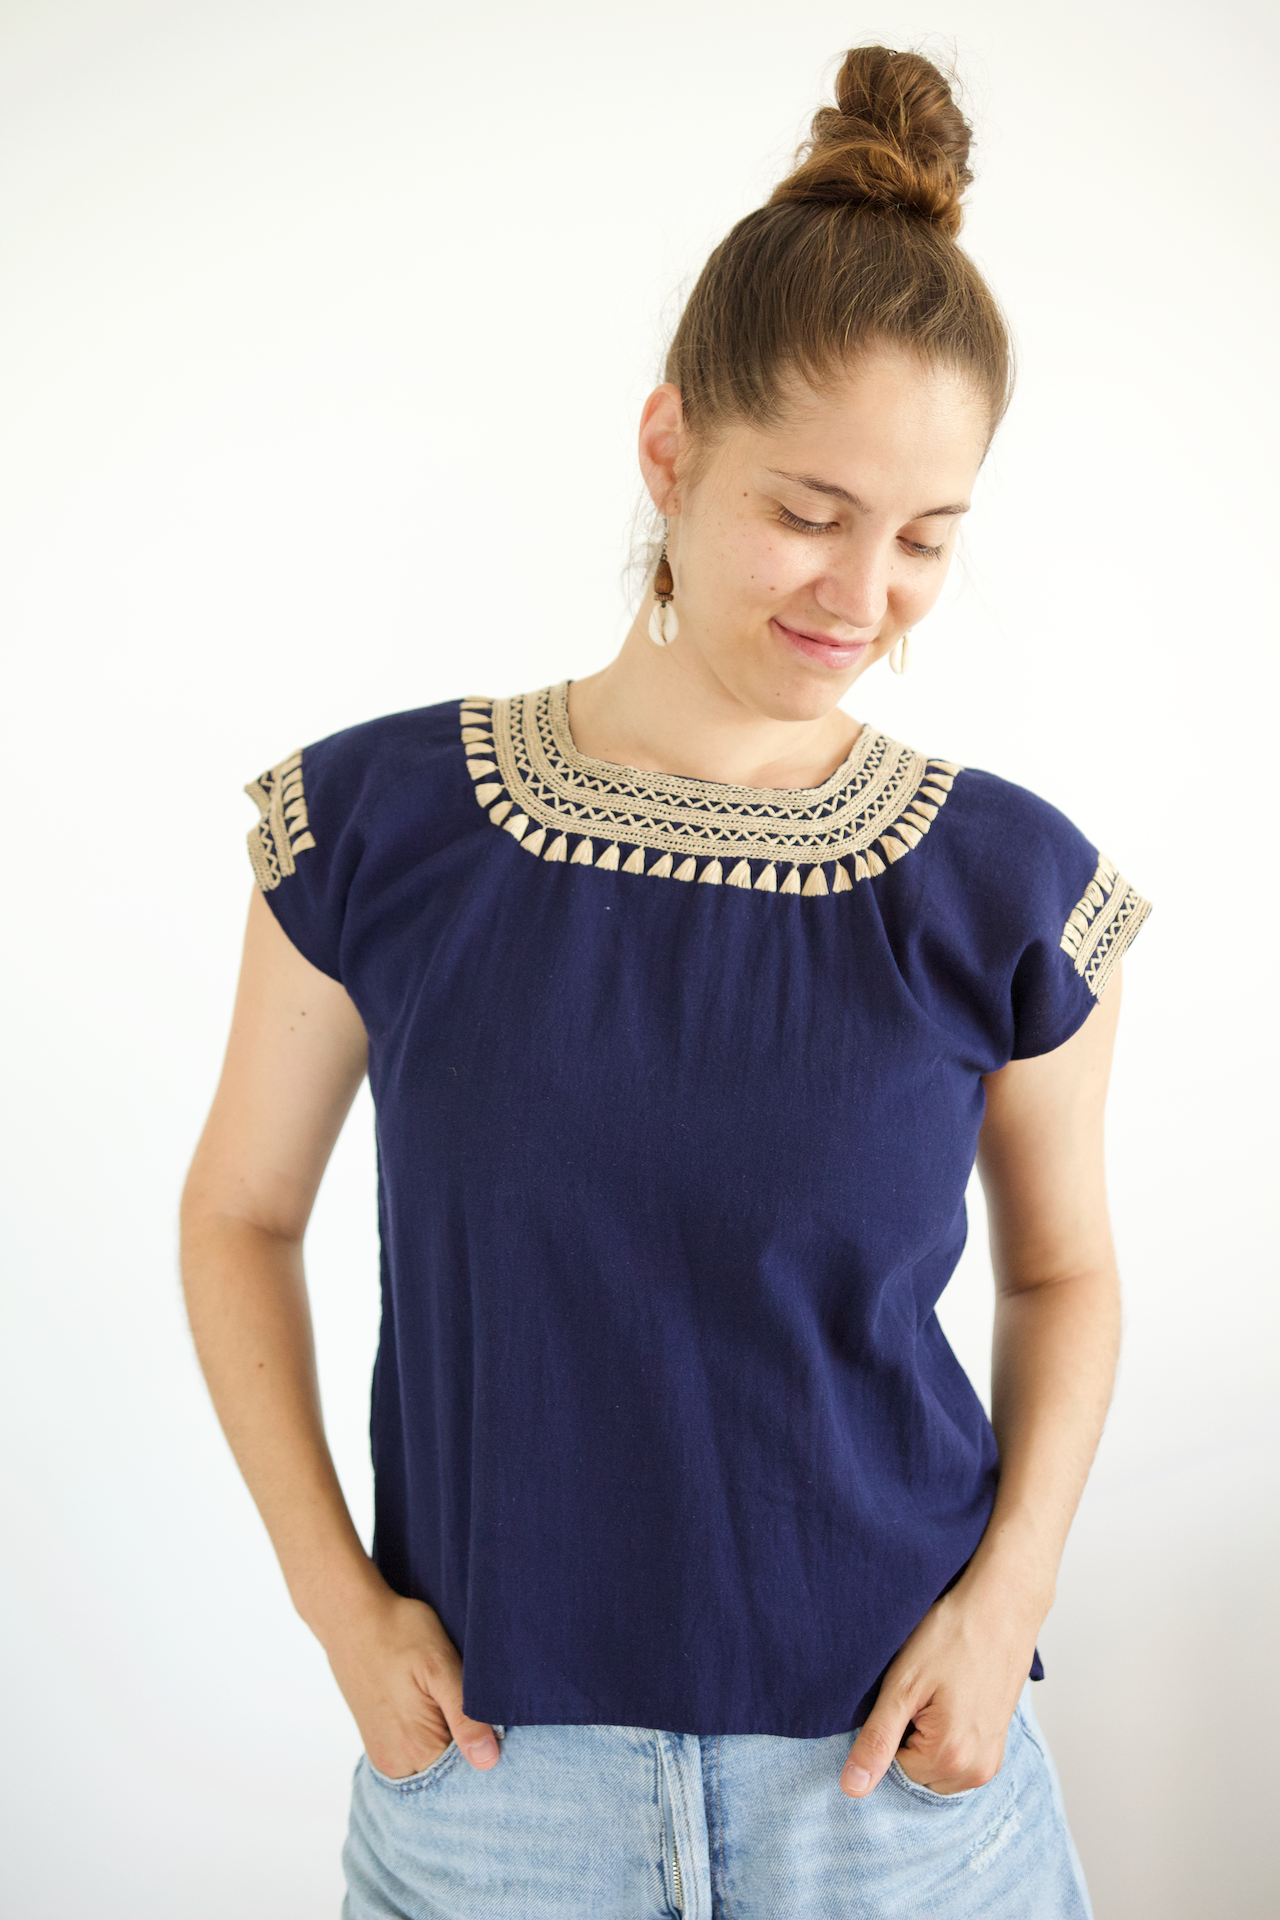 Dorada Blouse - Navy